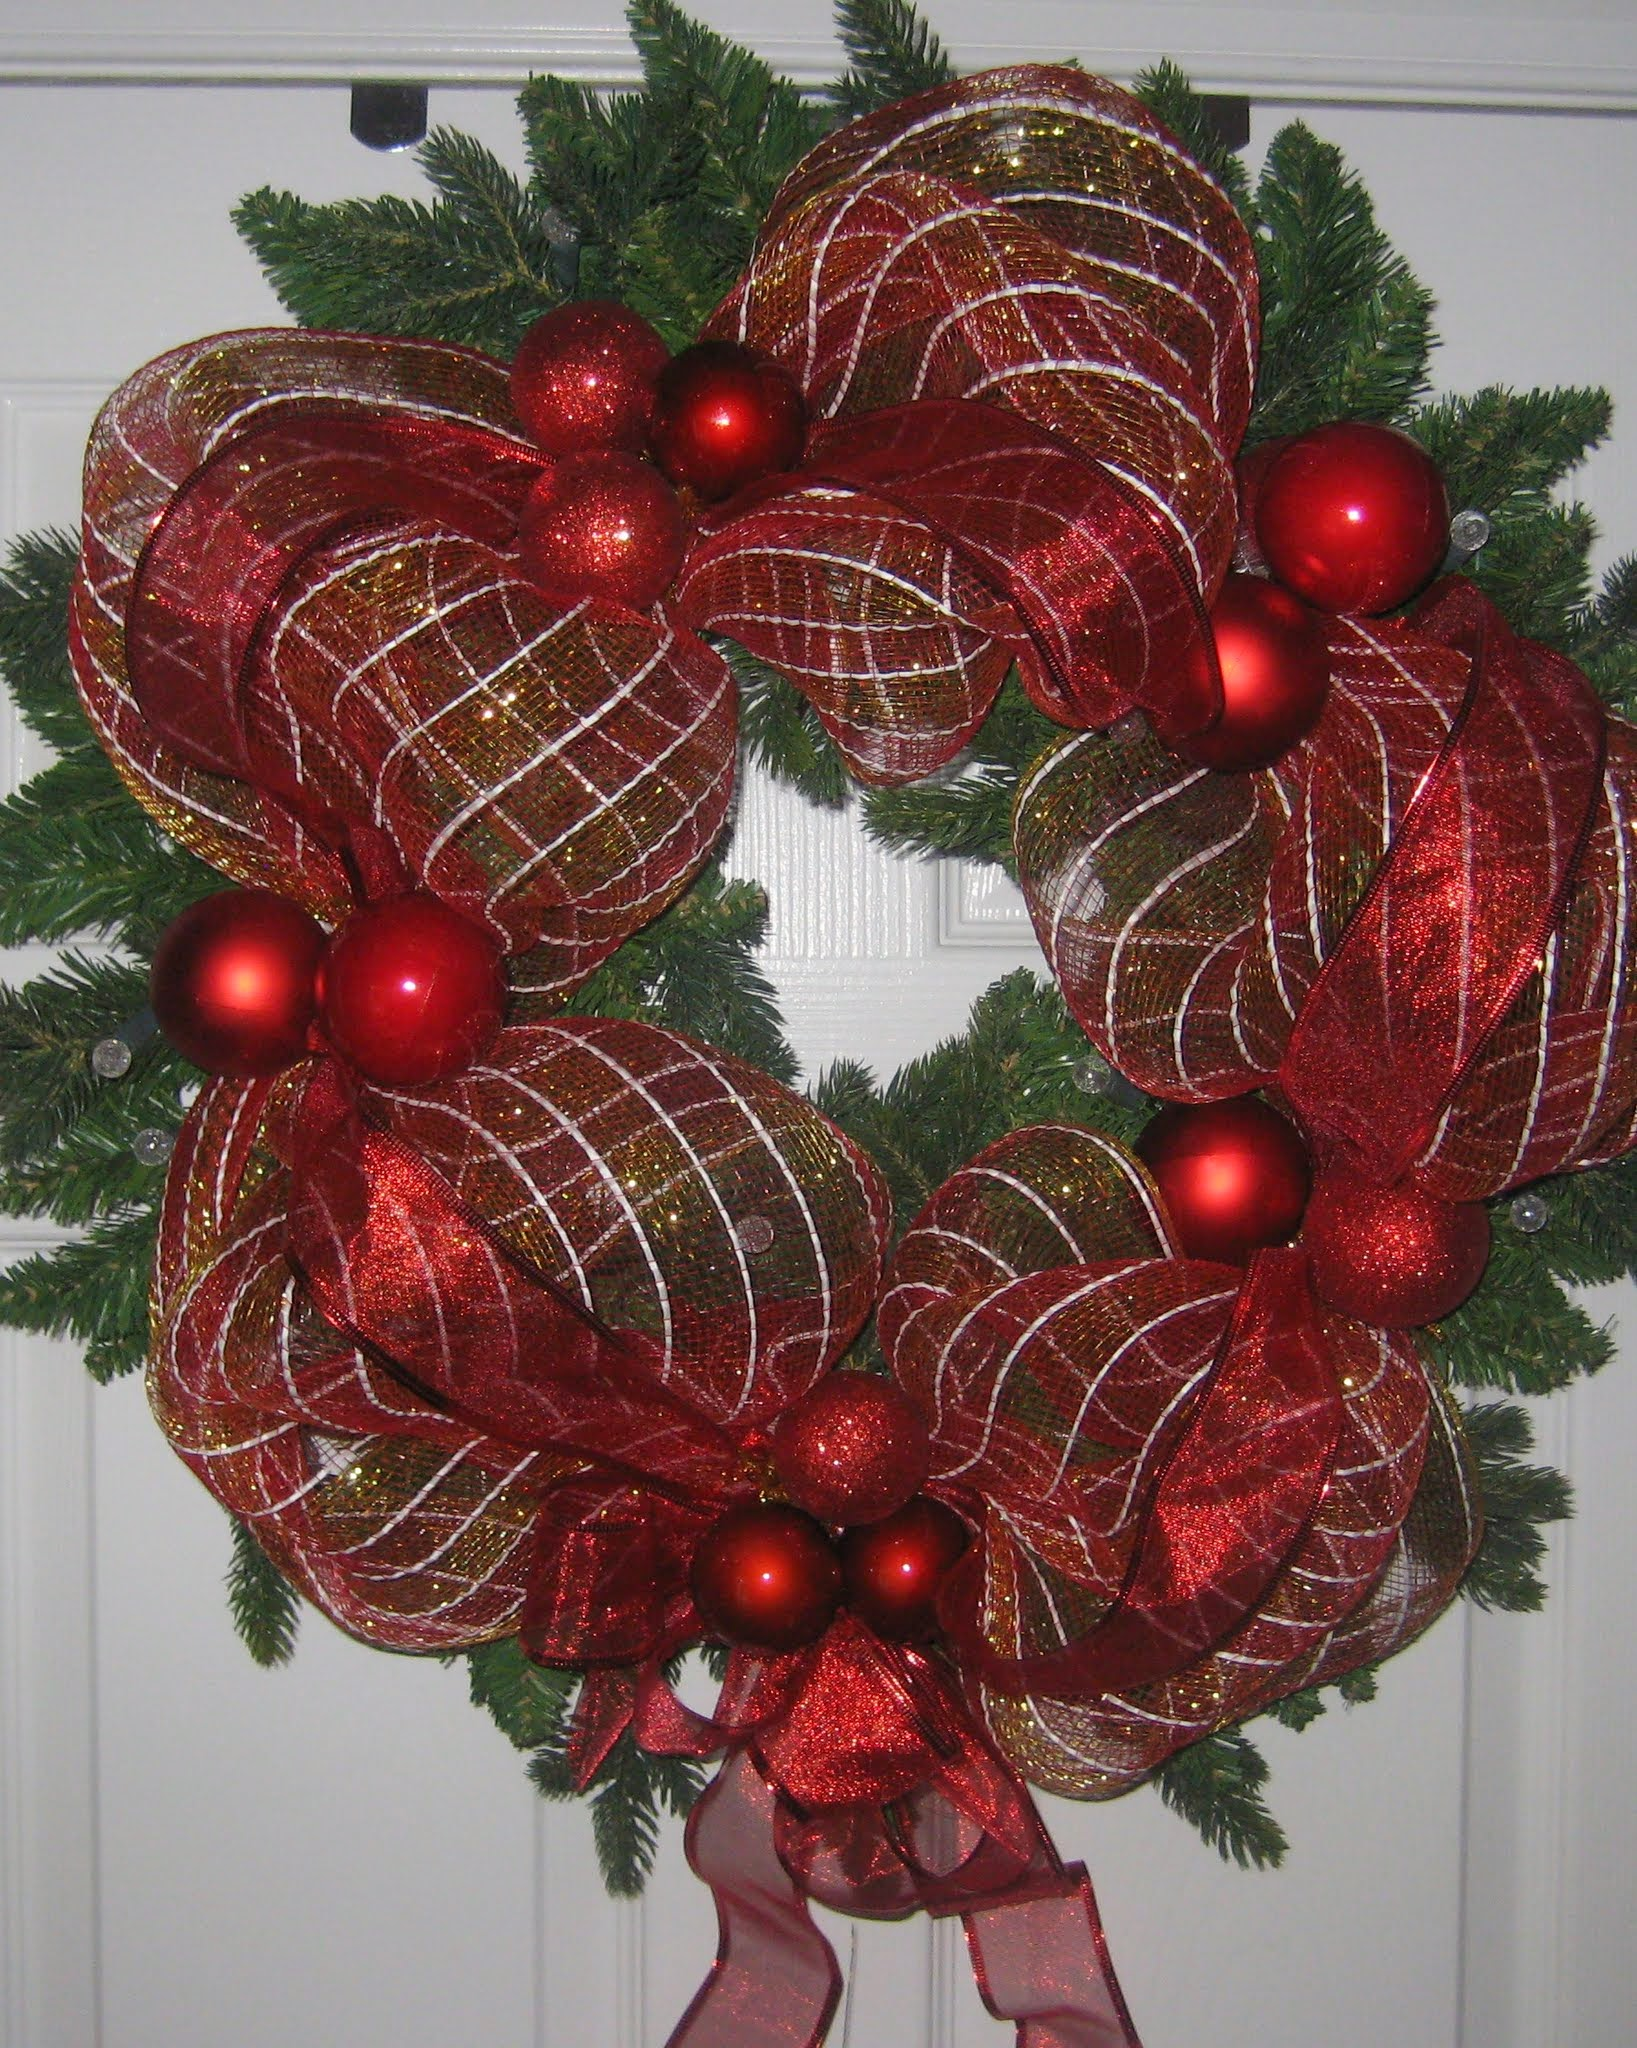 My DIY Ribbon Mesh Wrapped Wreath Project.